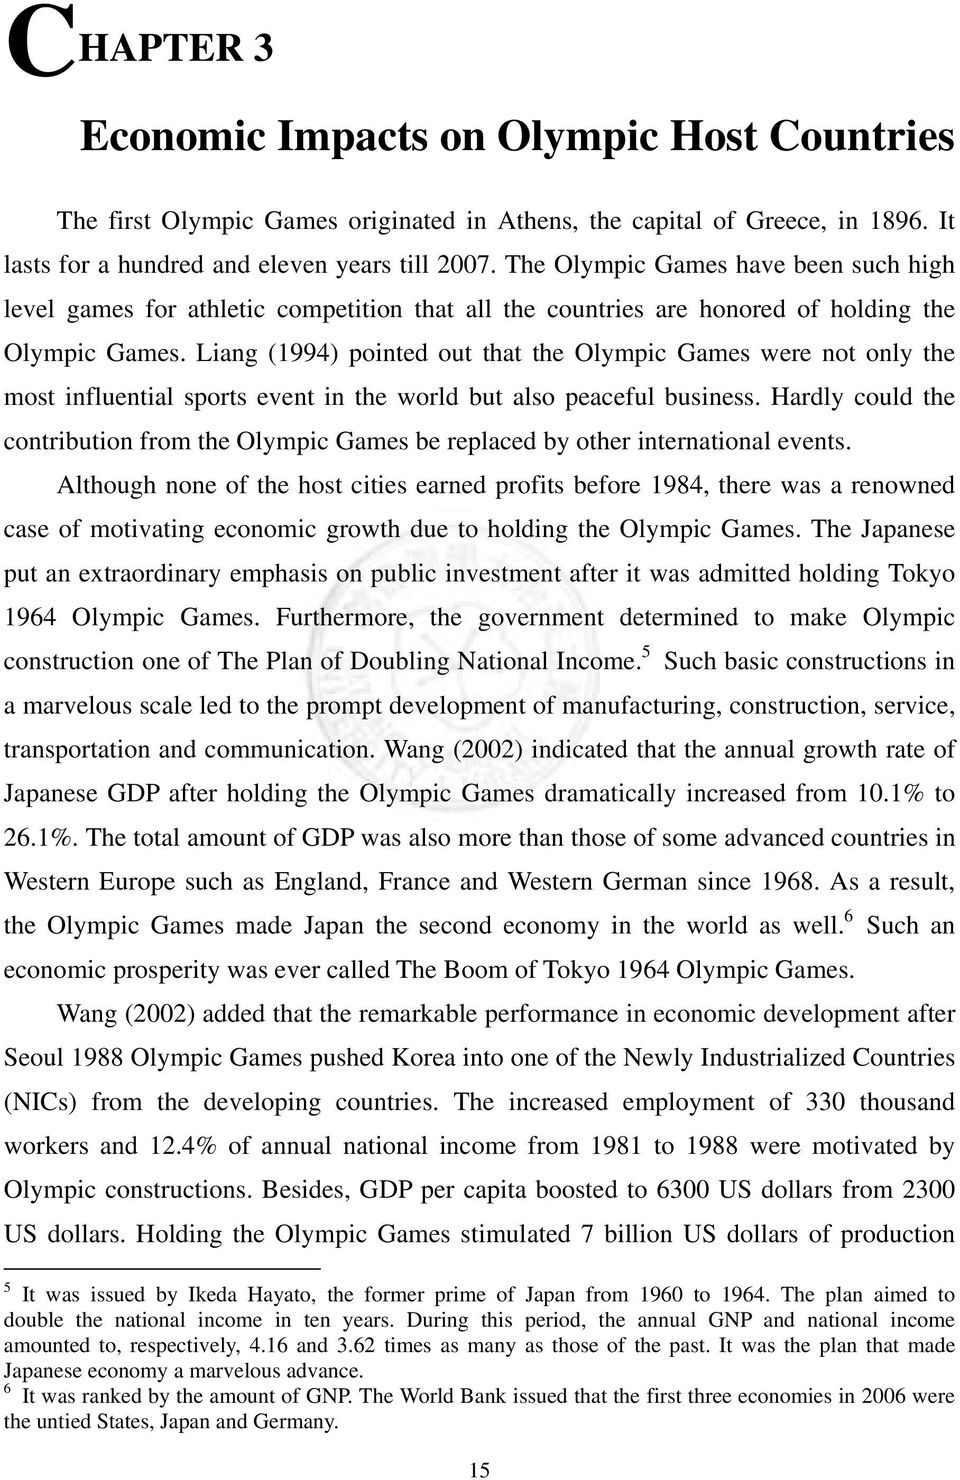 Liang (1994) pointed out that the Olympic Games were not only the most influential sports event in the world but also peaceful business.